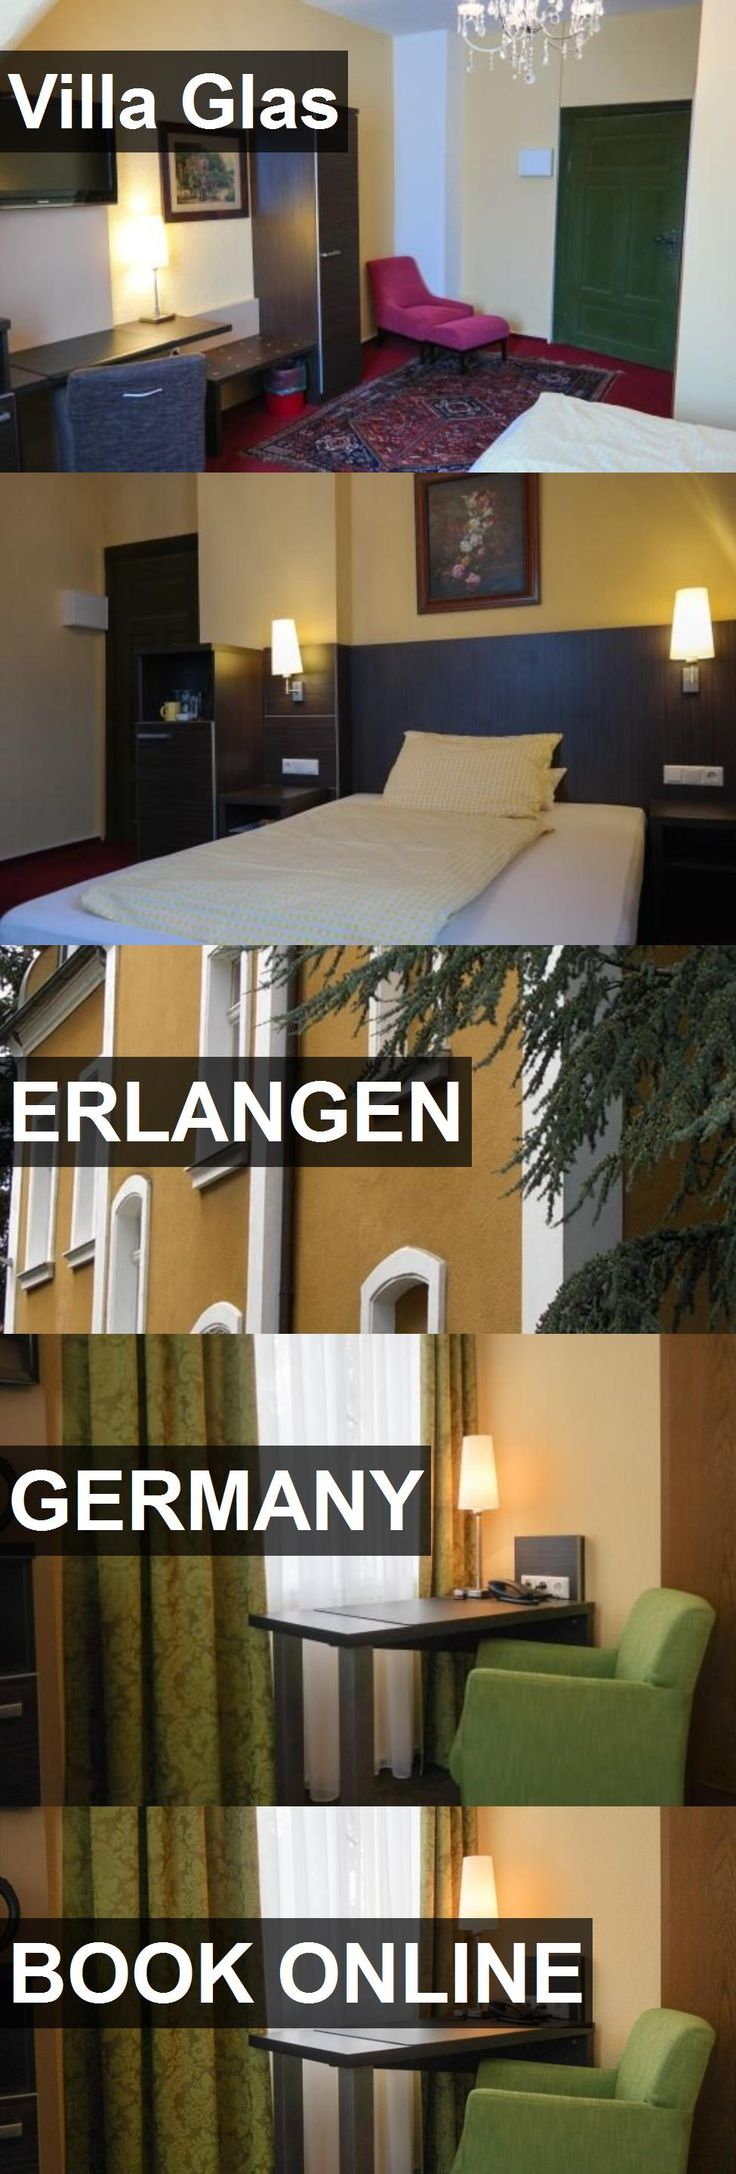 Hotel Villa Glas in Erlangen, Germany. For more information, photos, reviews and best prices please follow the link. #Germany #Erlangen #VillaGlas #hotel #travel #vacation